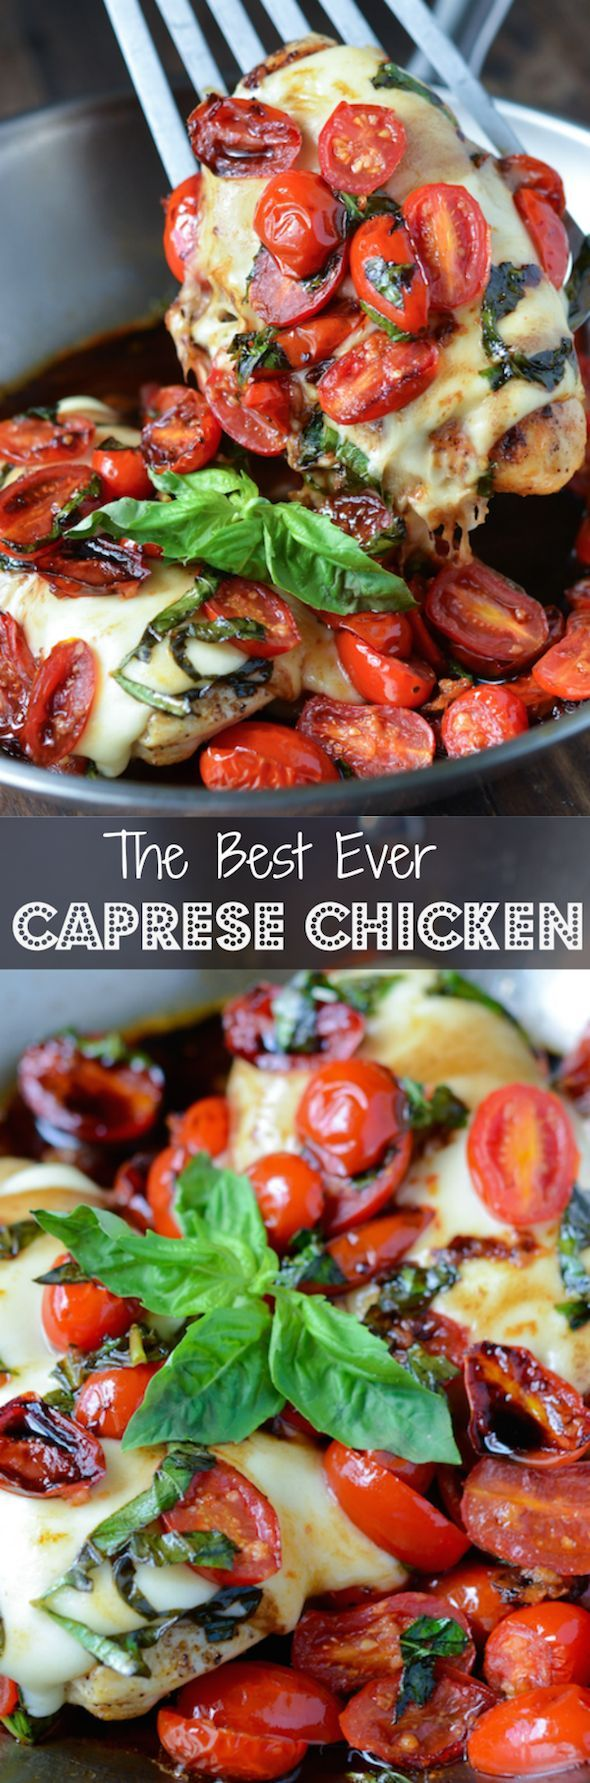 The Best Caprese Chicken - a super quick full flavored weeknight dinner!